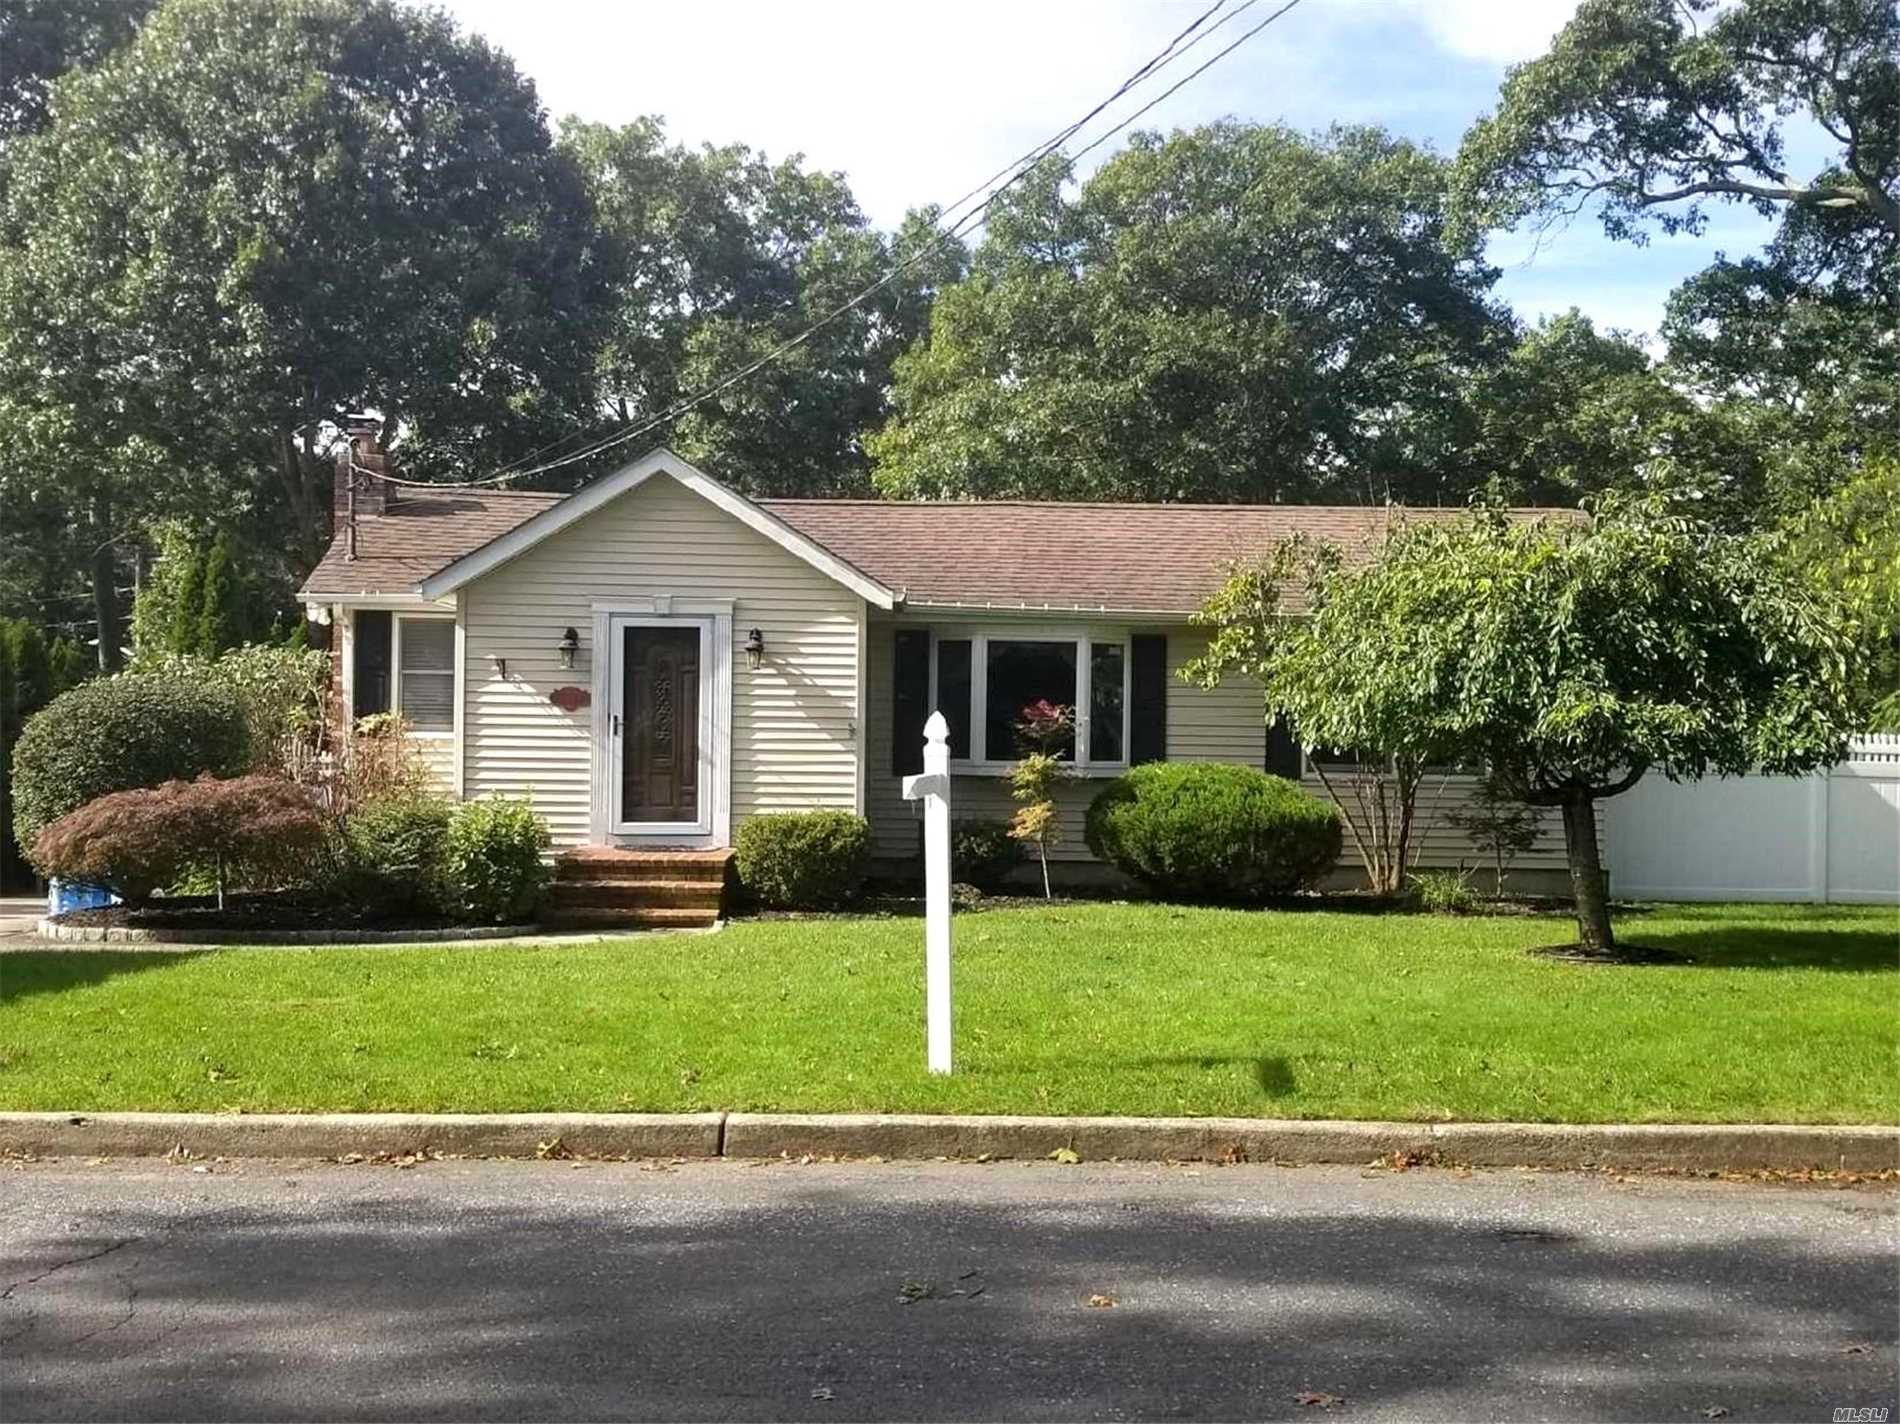 Completely Renovated 3 Bedroom Ranch. Featuring Updated Amazing Custom Kitchen, New 200 Amp Electric, Ig Sprinklers, Vaulted Ceilings, Andersen Windows, Cac & 6 Mouldings, Oversized Maintenance Free Trex Deck, Central Vacuum And More! Sachem Schools! Mortgage Assumable At 3.75%!